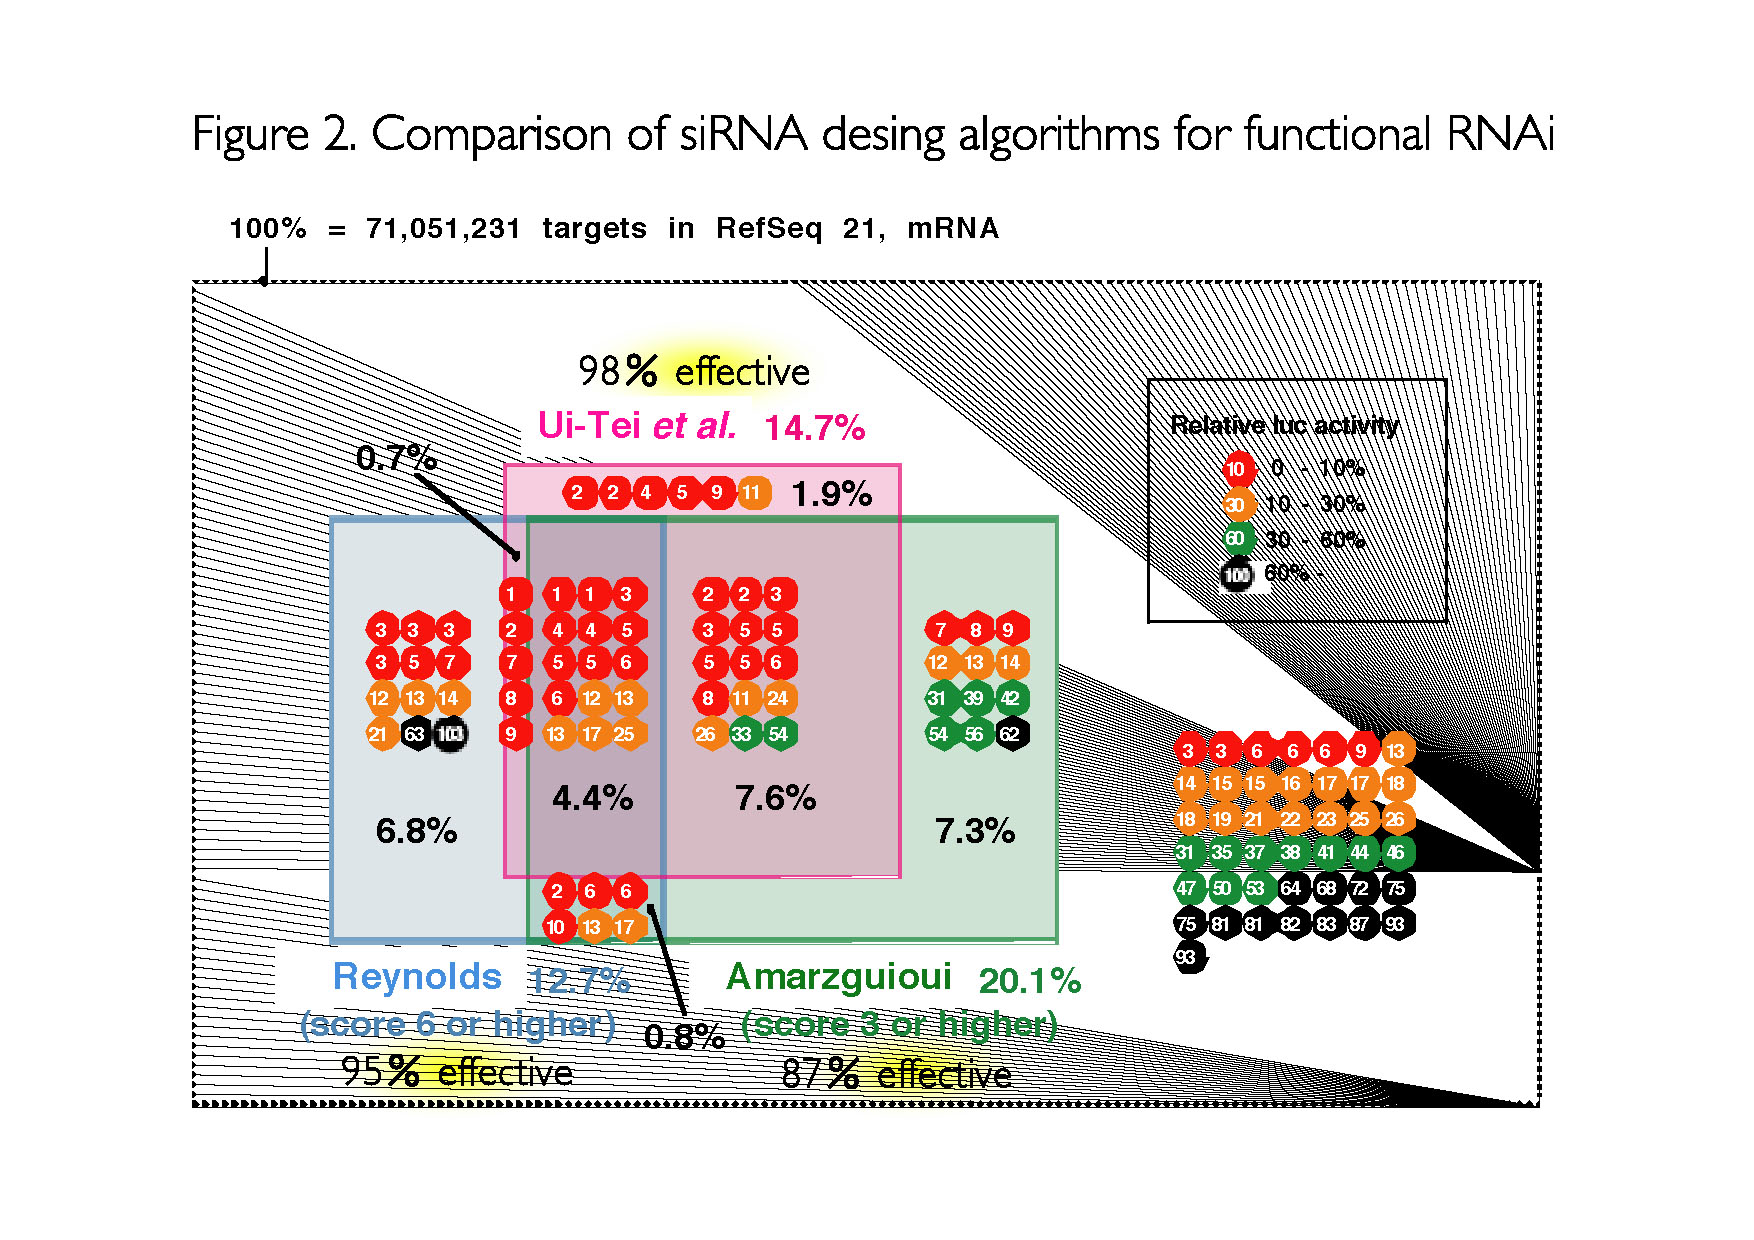 Comparison of siRNA desing algorithms for functional RNAi